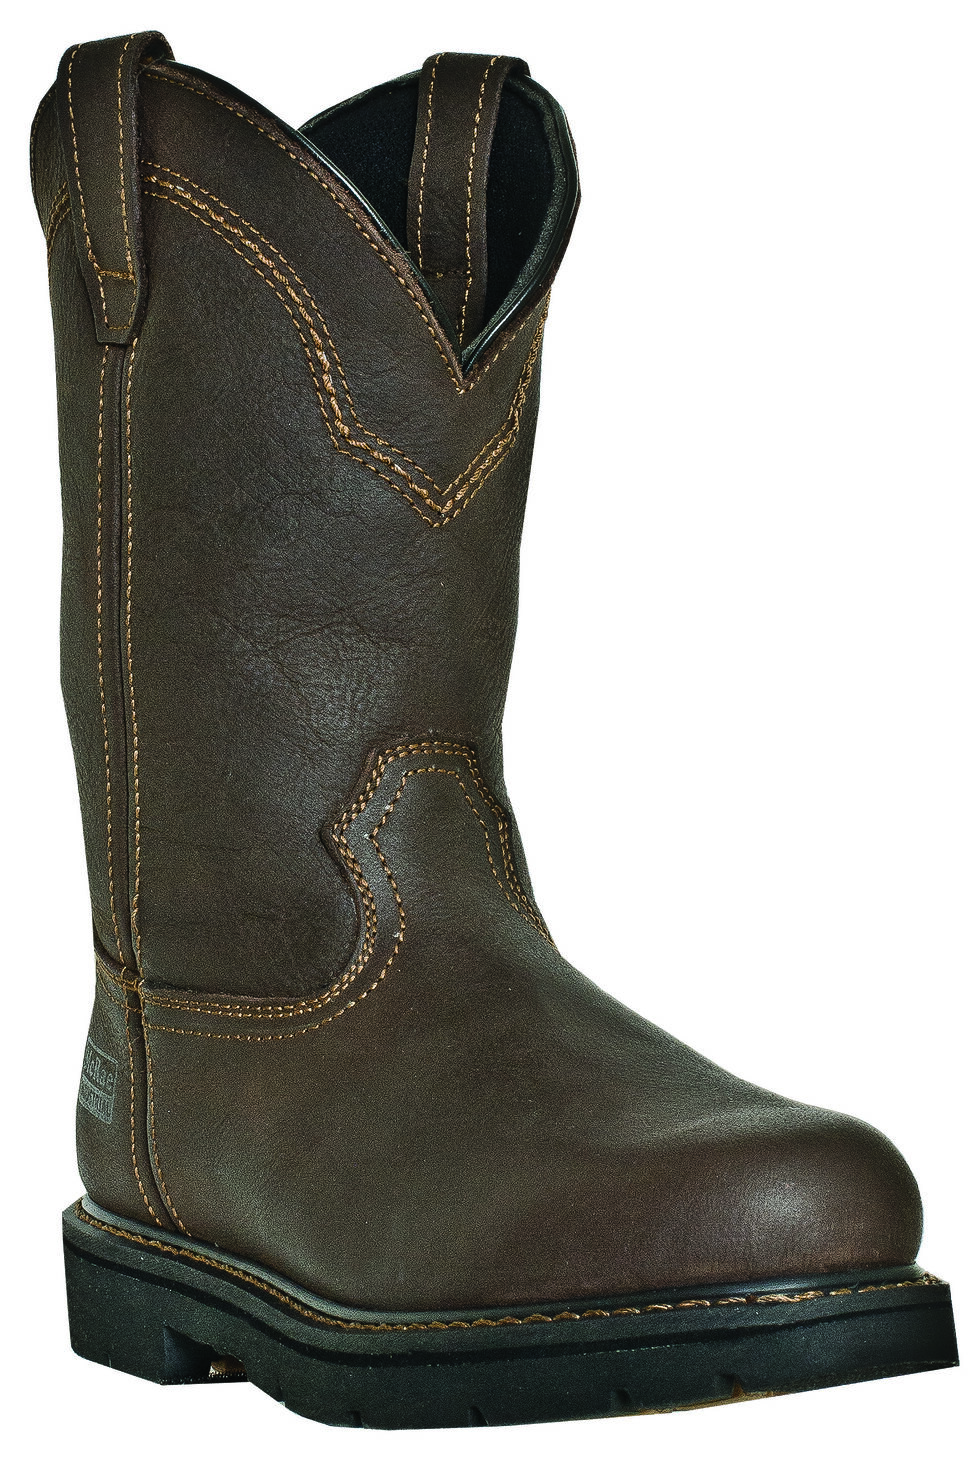 McRae Men's Pull-On Work Boots - Steel Toe, Brown, hi-res